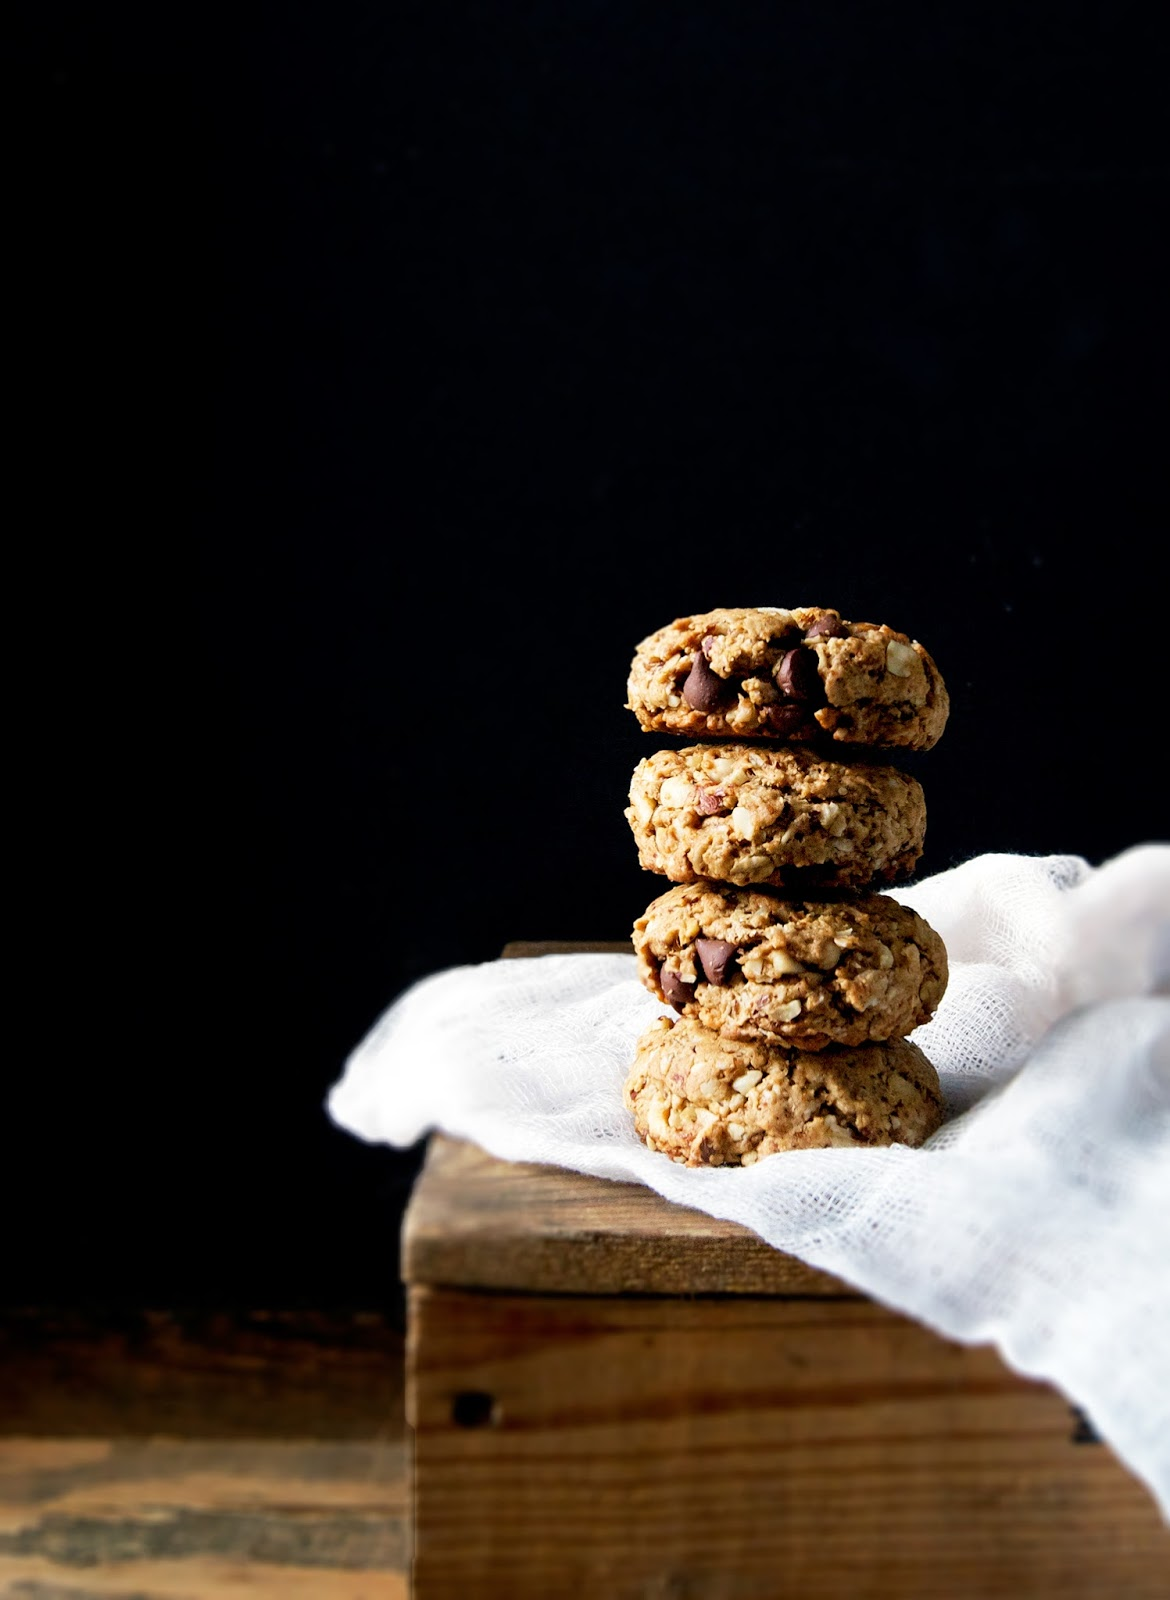 Vegan hazelnut oatmeal cookies, with chocolate chips and coconut sugar. Using hazelnuts as part of the base of these cookies adds richness and a buttery taste without adding any dairy.